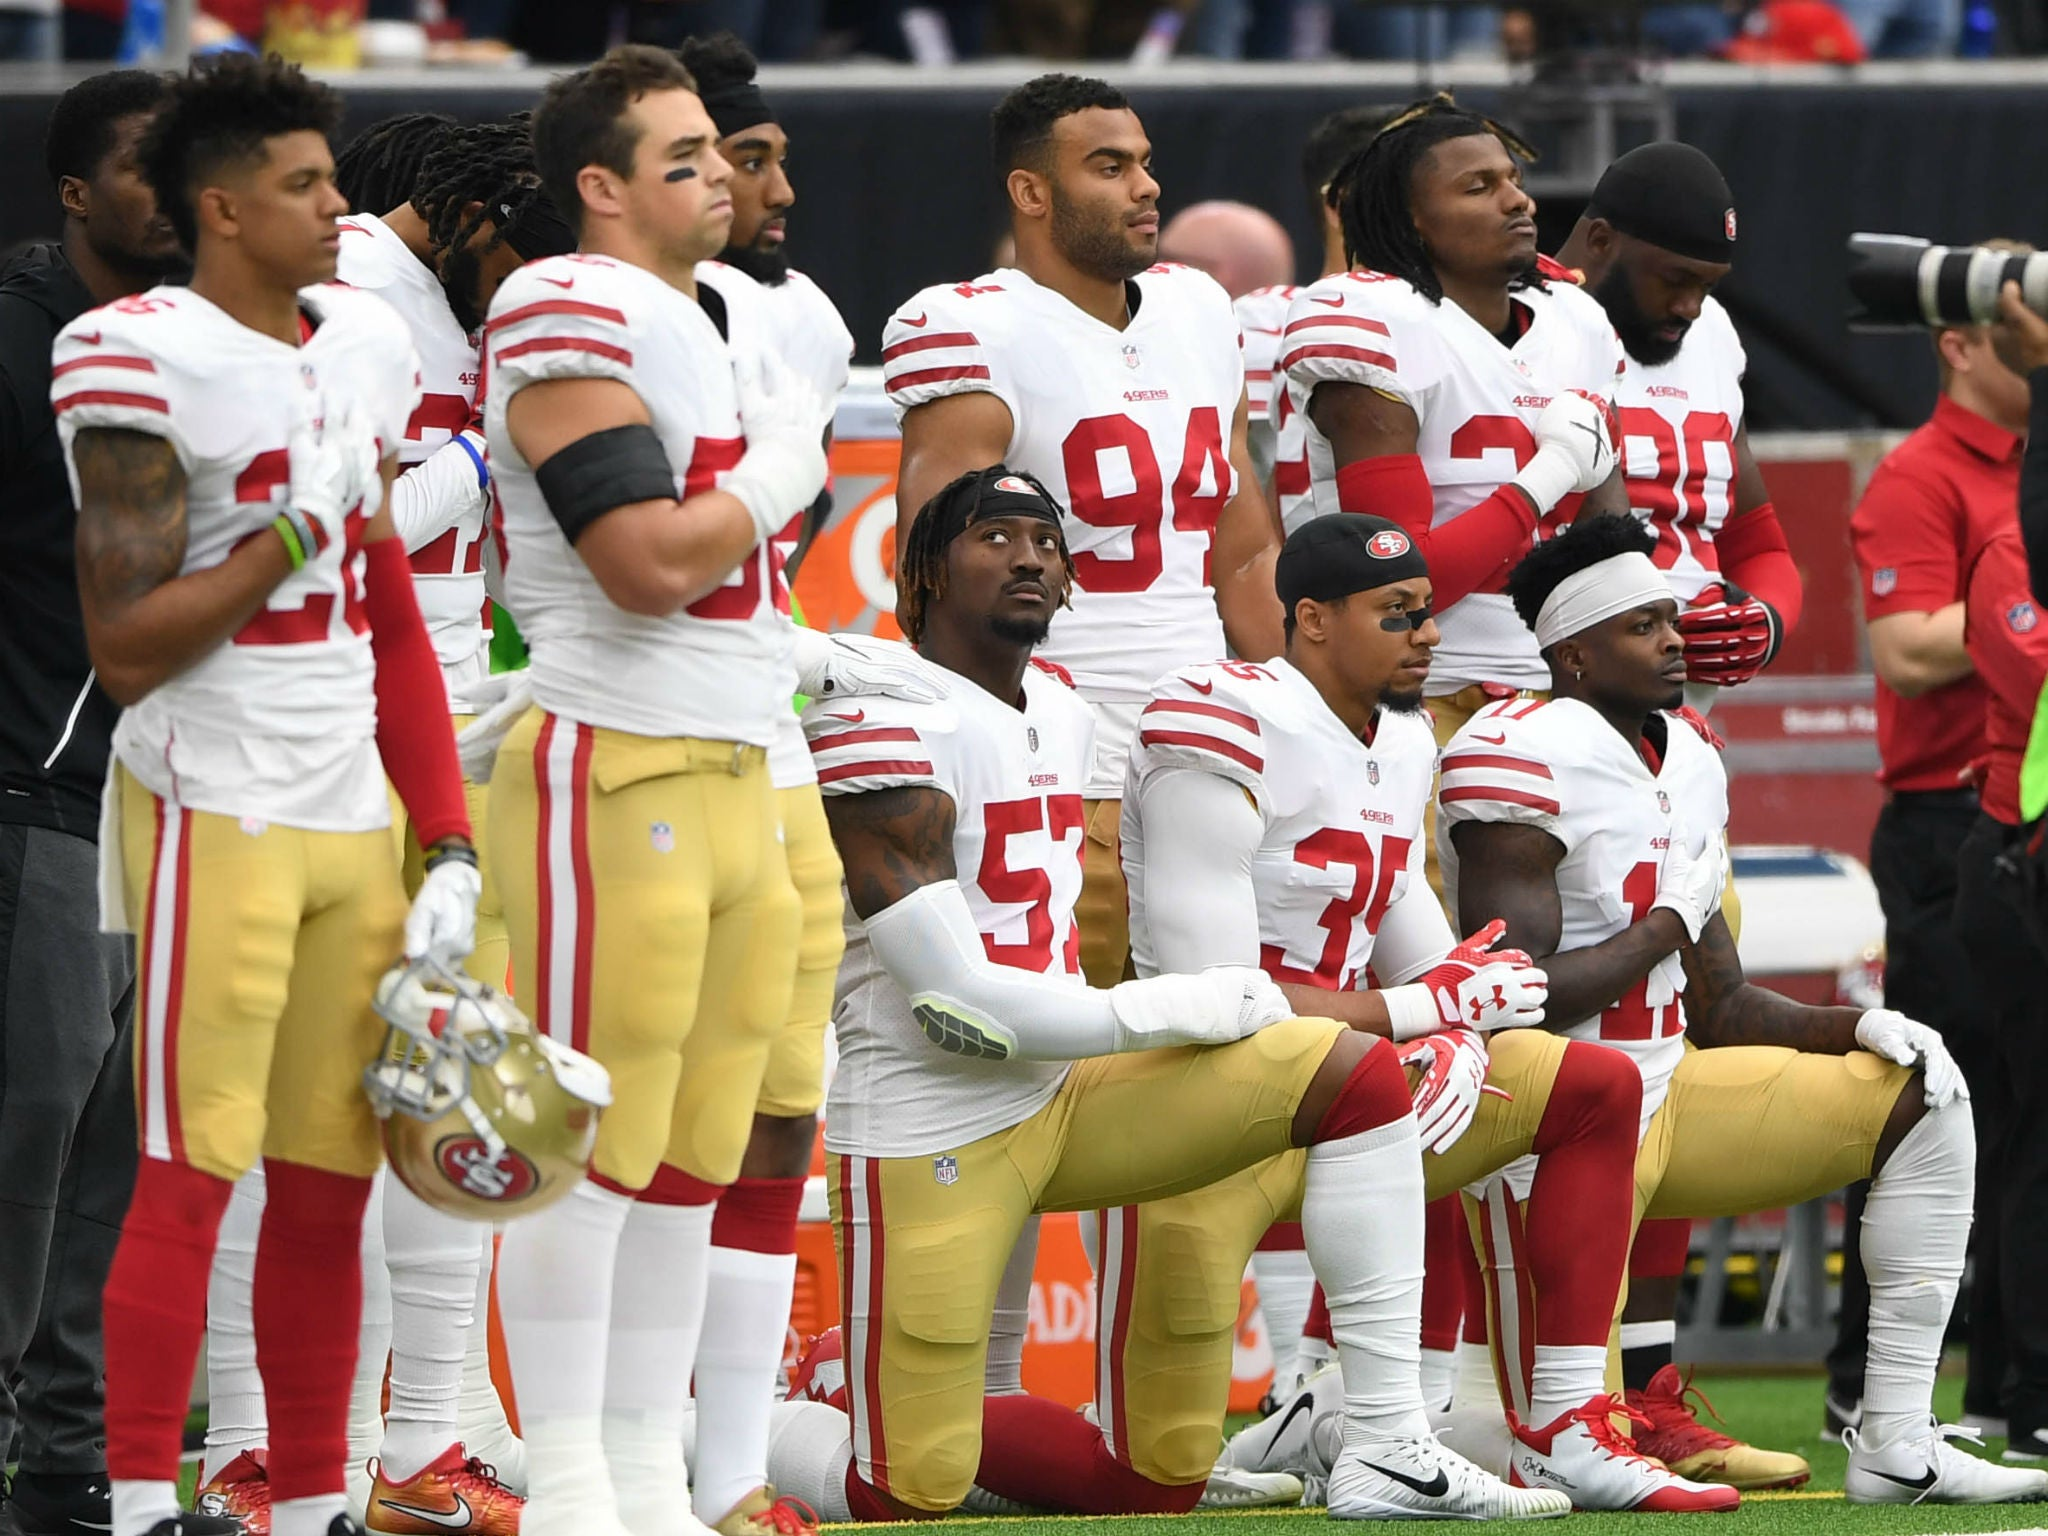 the modern societys of america and the national anthem in the nfl Nearly two-thirds of americans say nfl players should stand and be respectful during the playing of the national anthem, according to a survey released the survey also found that 80 percent of voters want less politics in sports, while 51 percent say they are watching less football than in previous years.